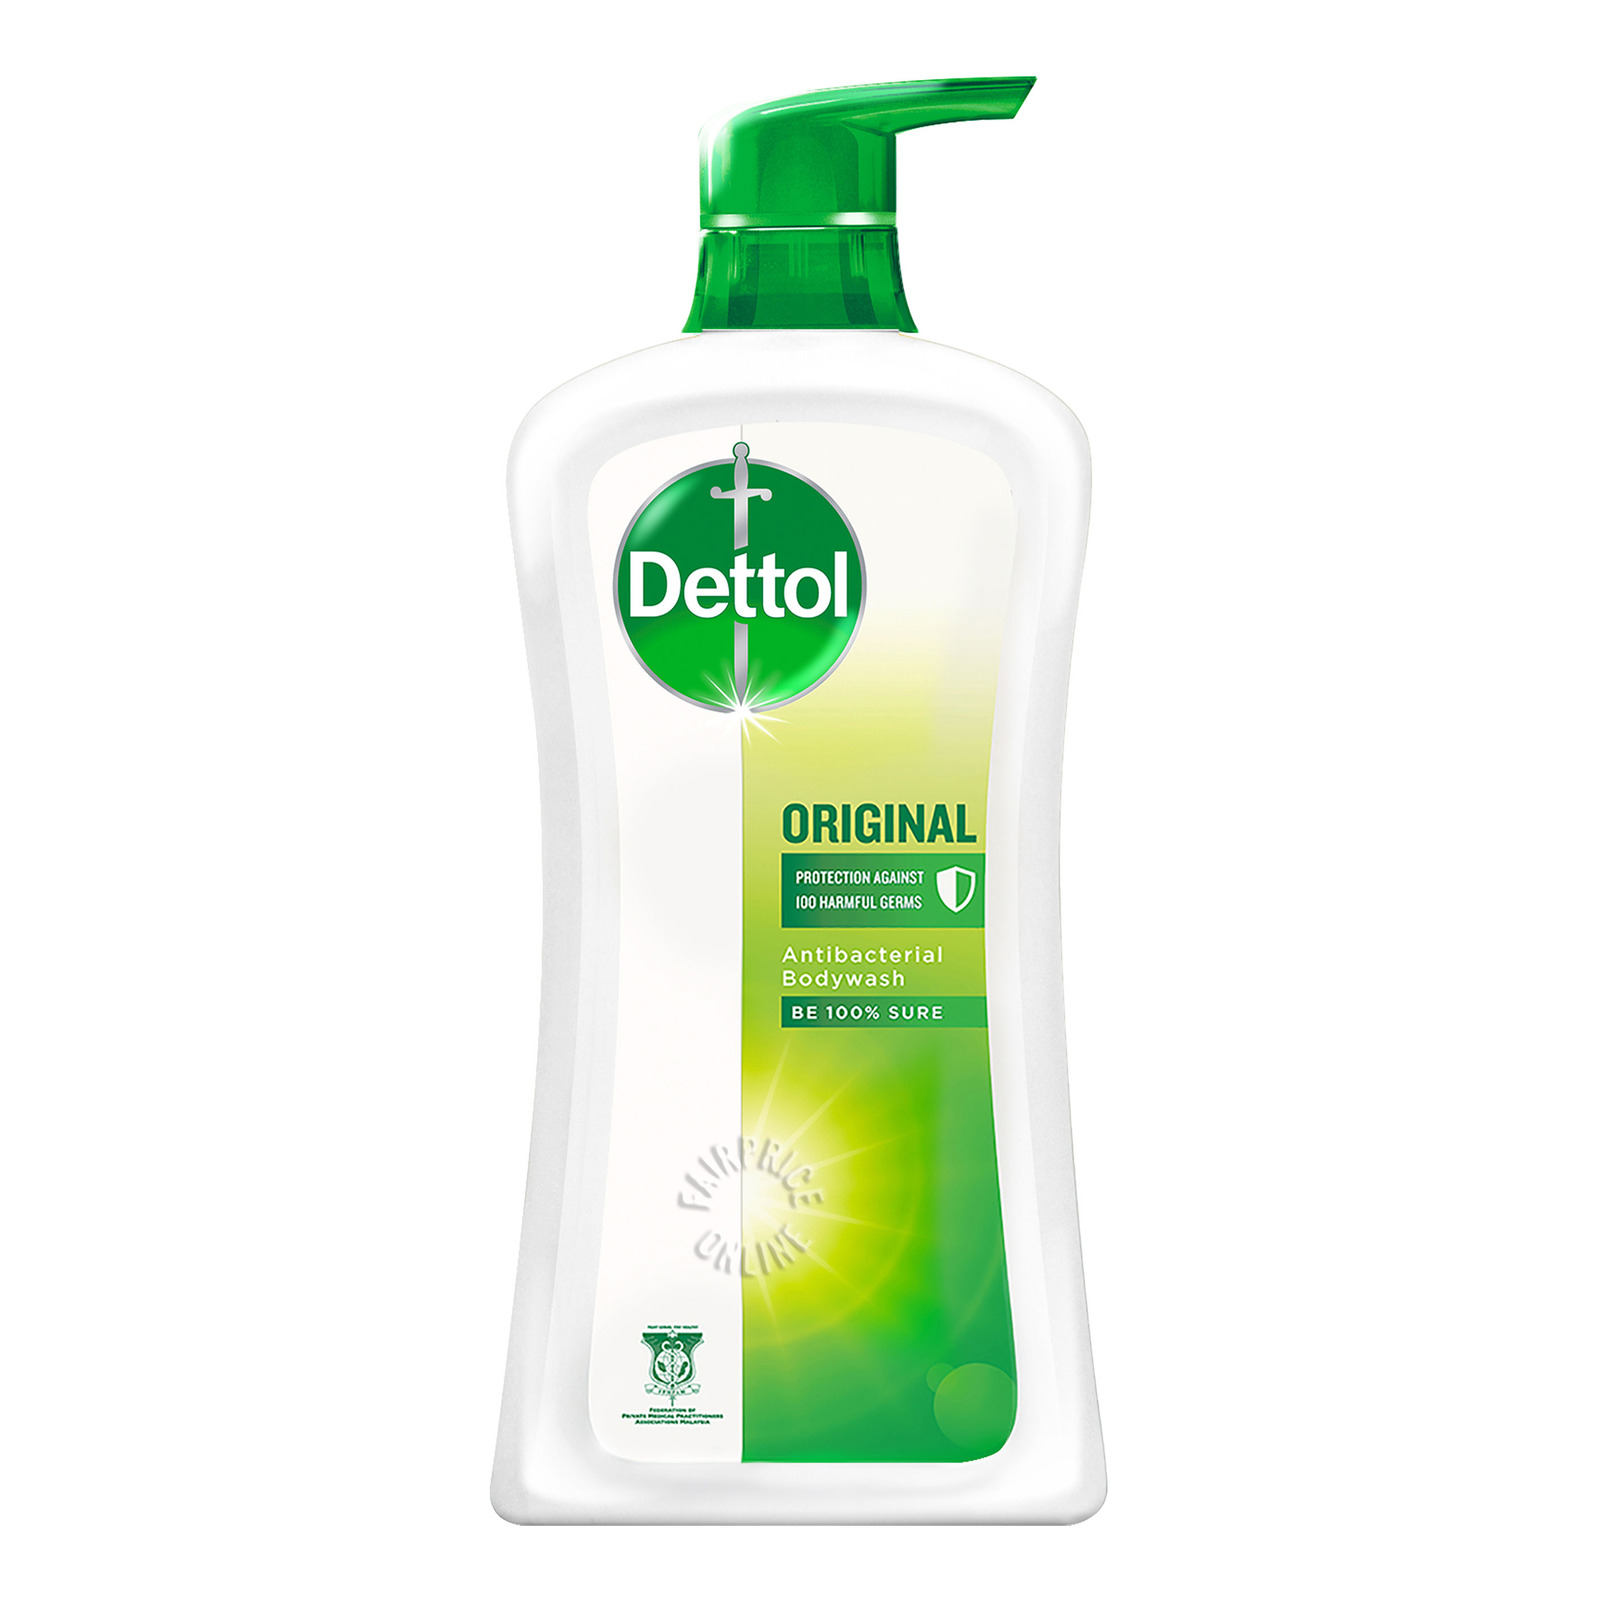 Dettol Anti-Bacterial pH-Balanced Body Wash - Original